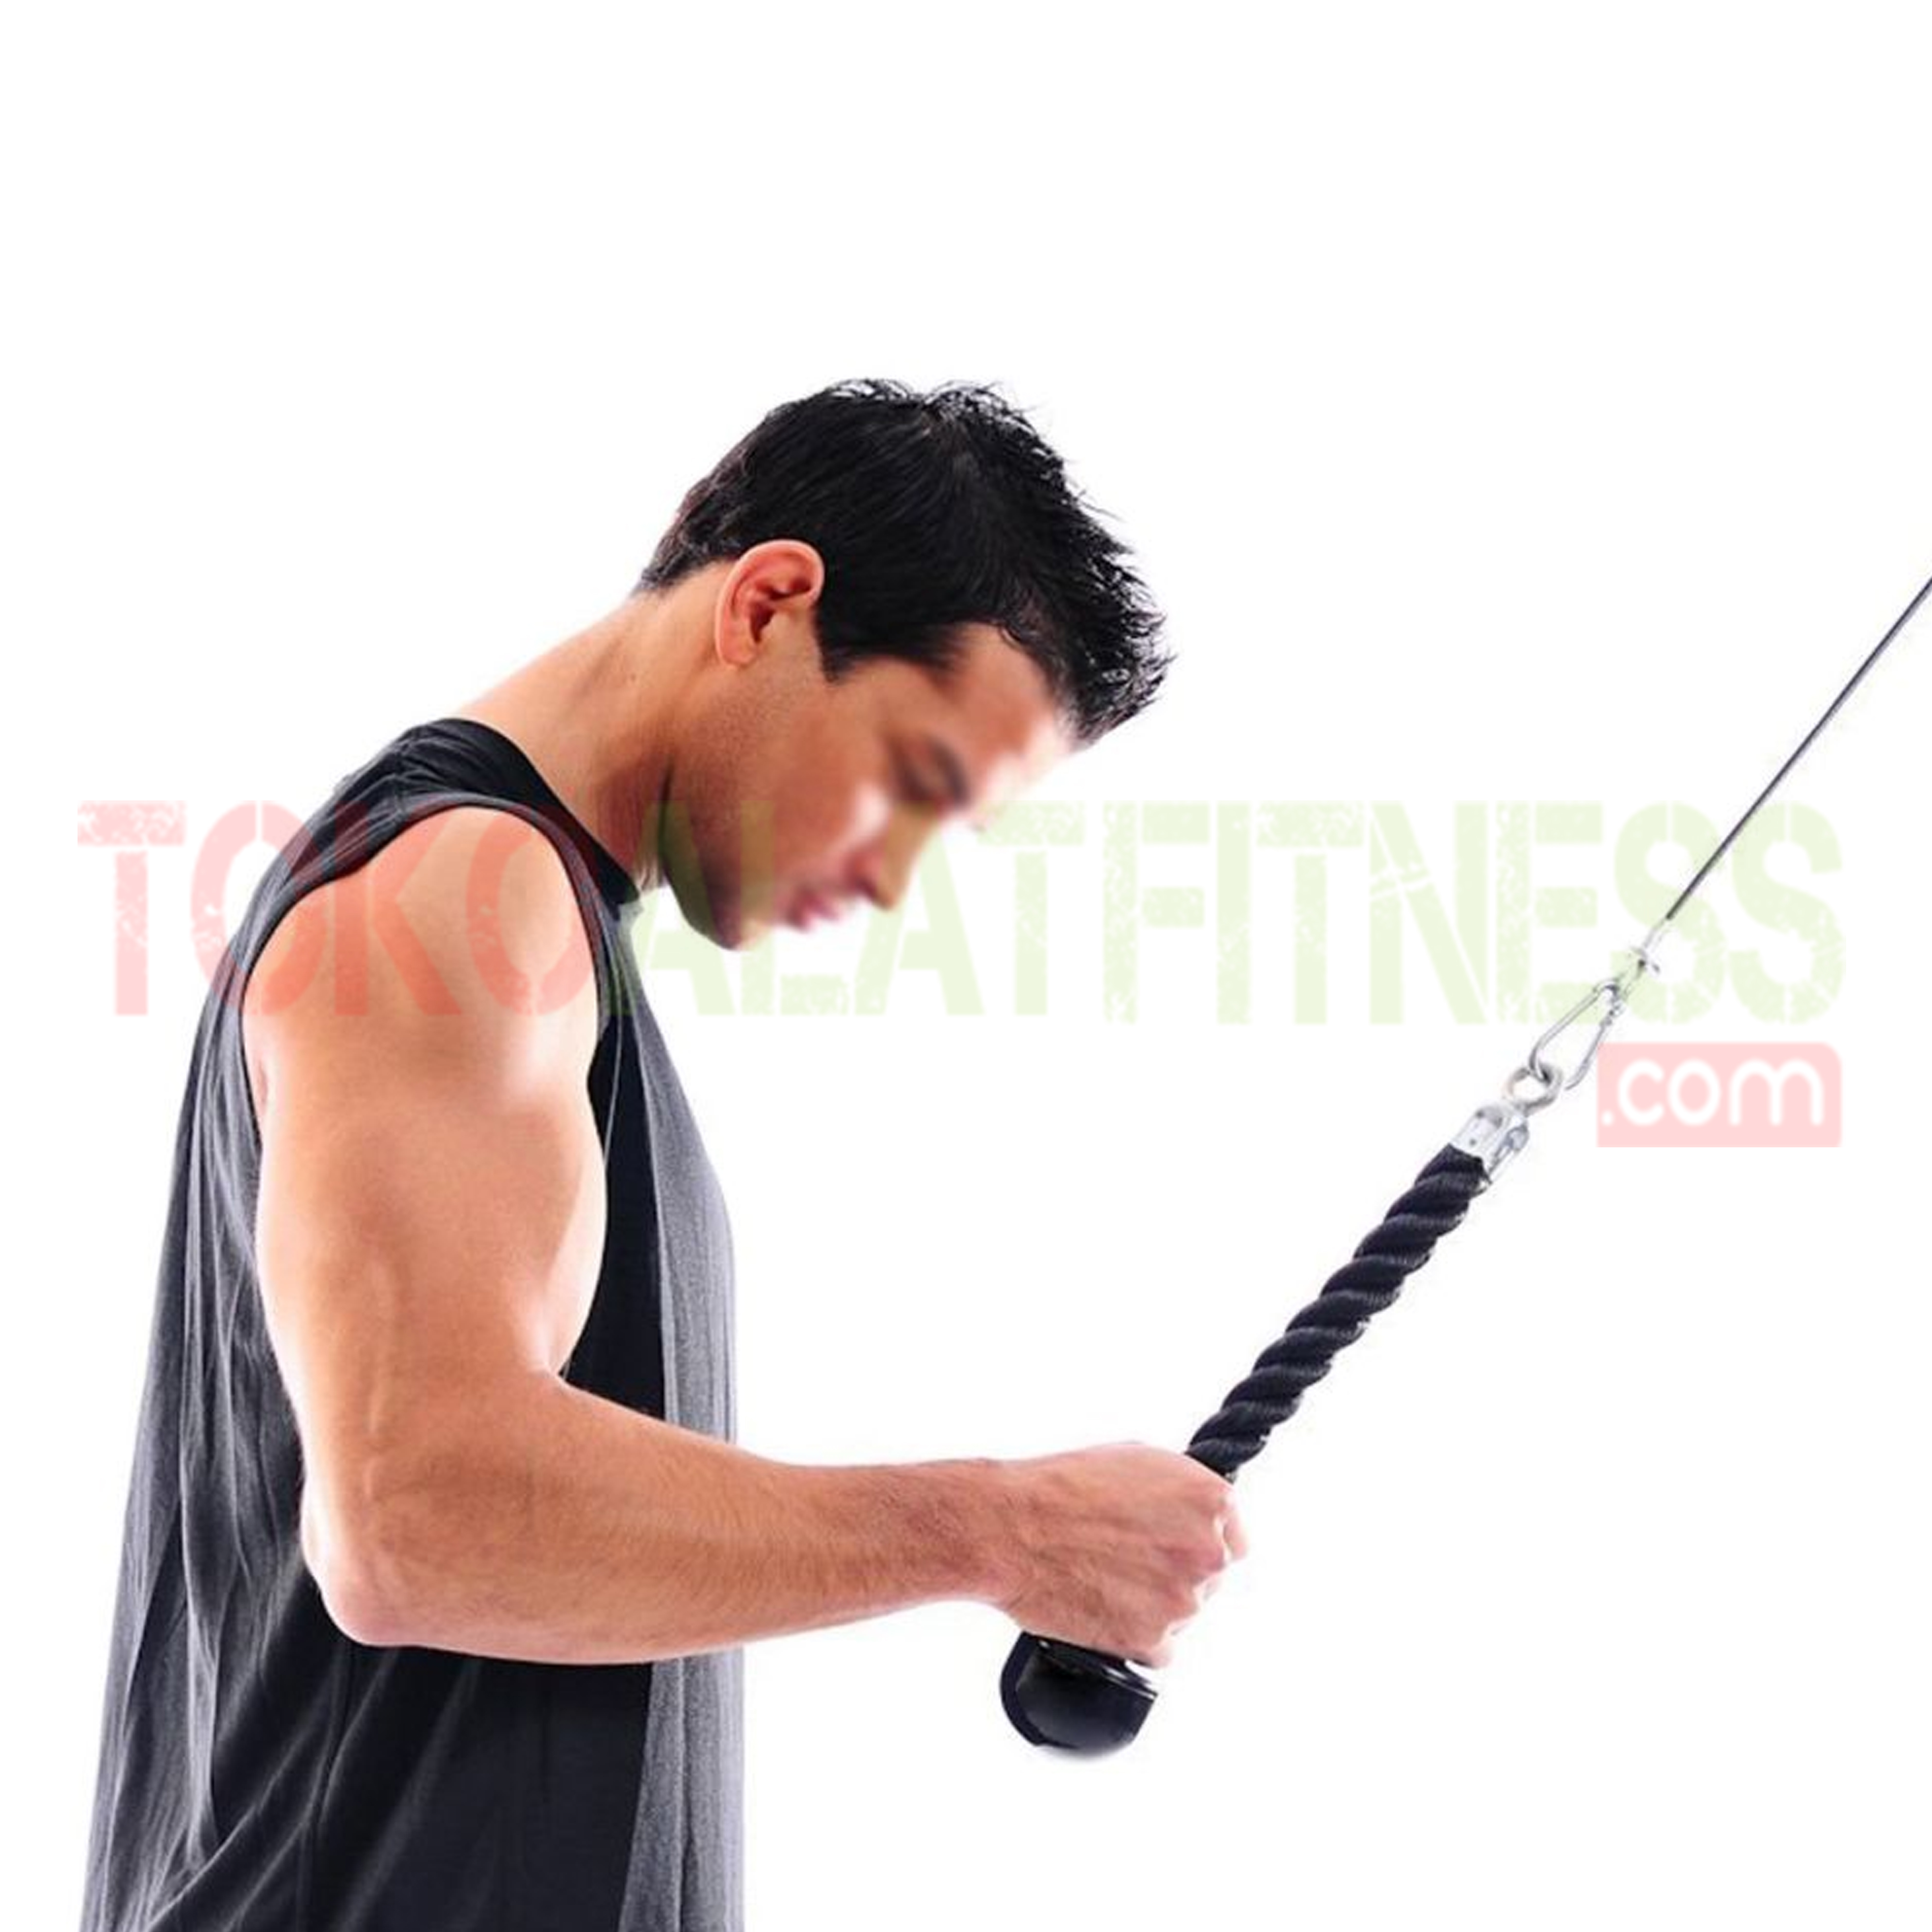 Handle Tricep Rope Single workout wtm - Handle Tricep Rope Single Body Gym - ASSAF44